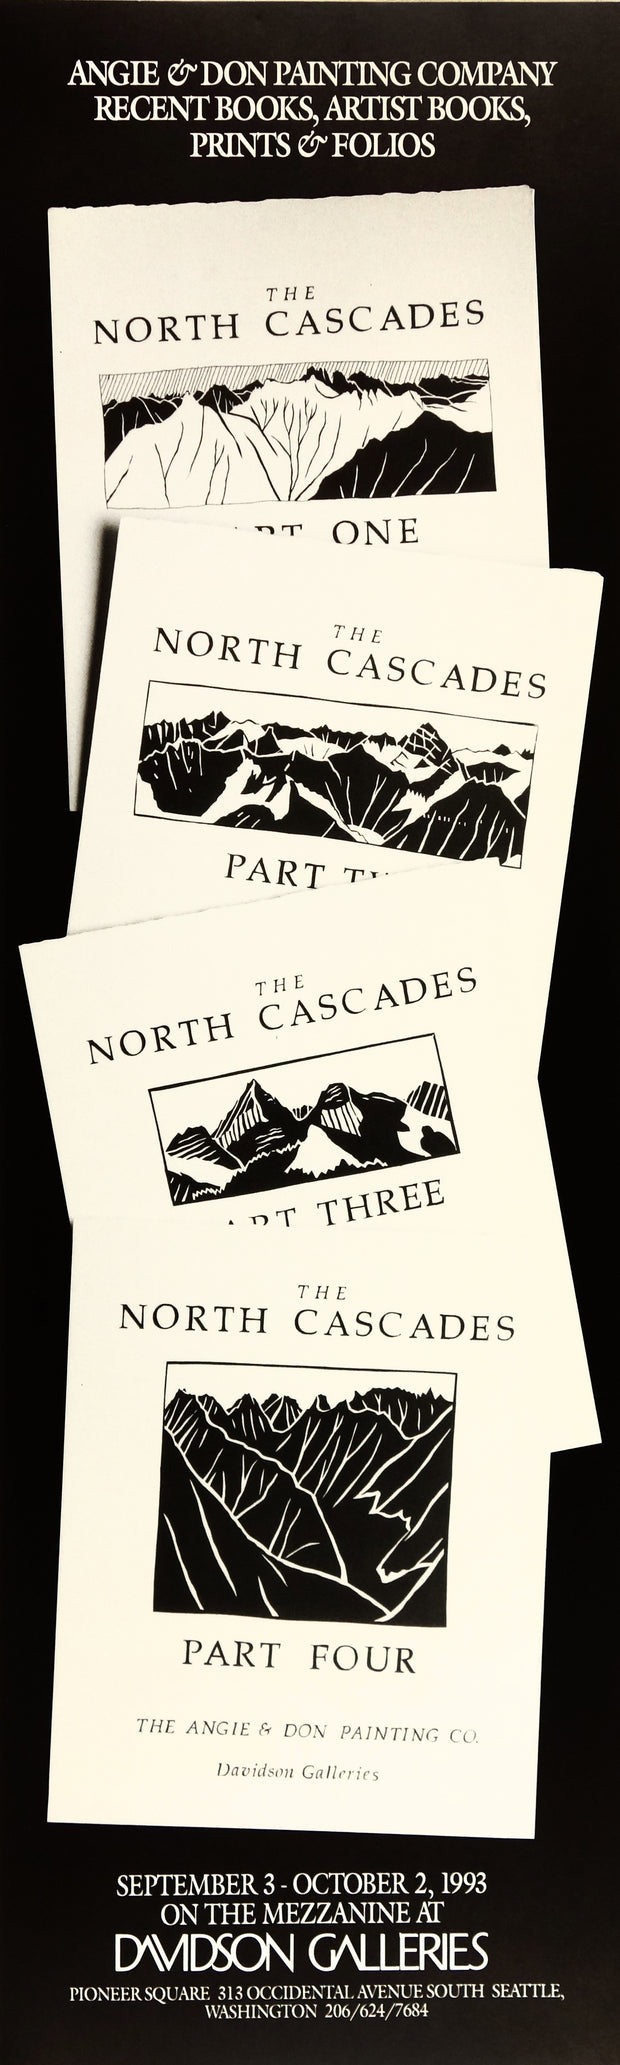 The North Cascades Portfolio Poster by Patrick Anderson - Davidson Galleries